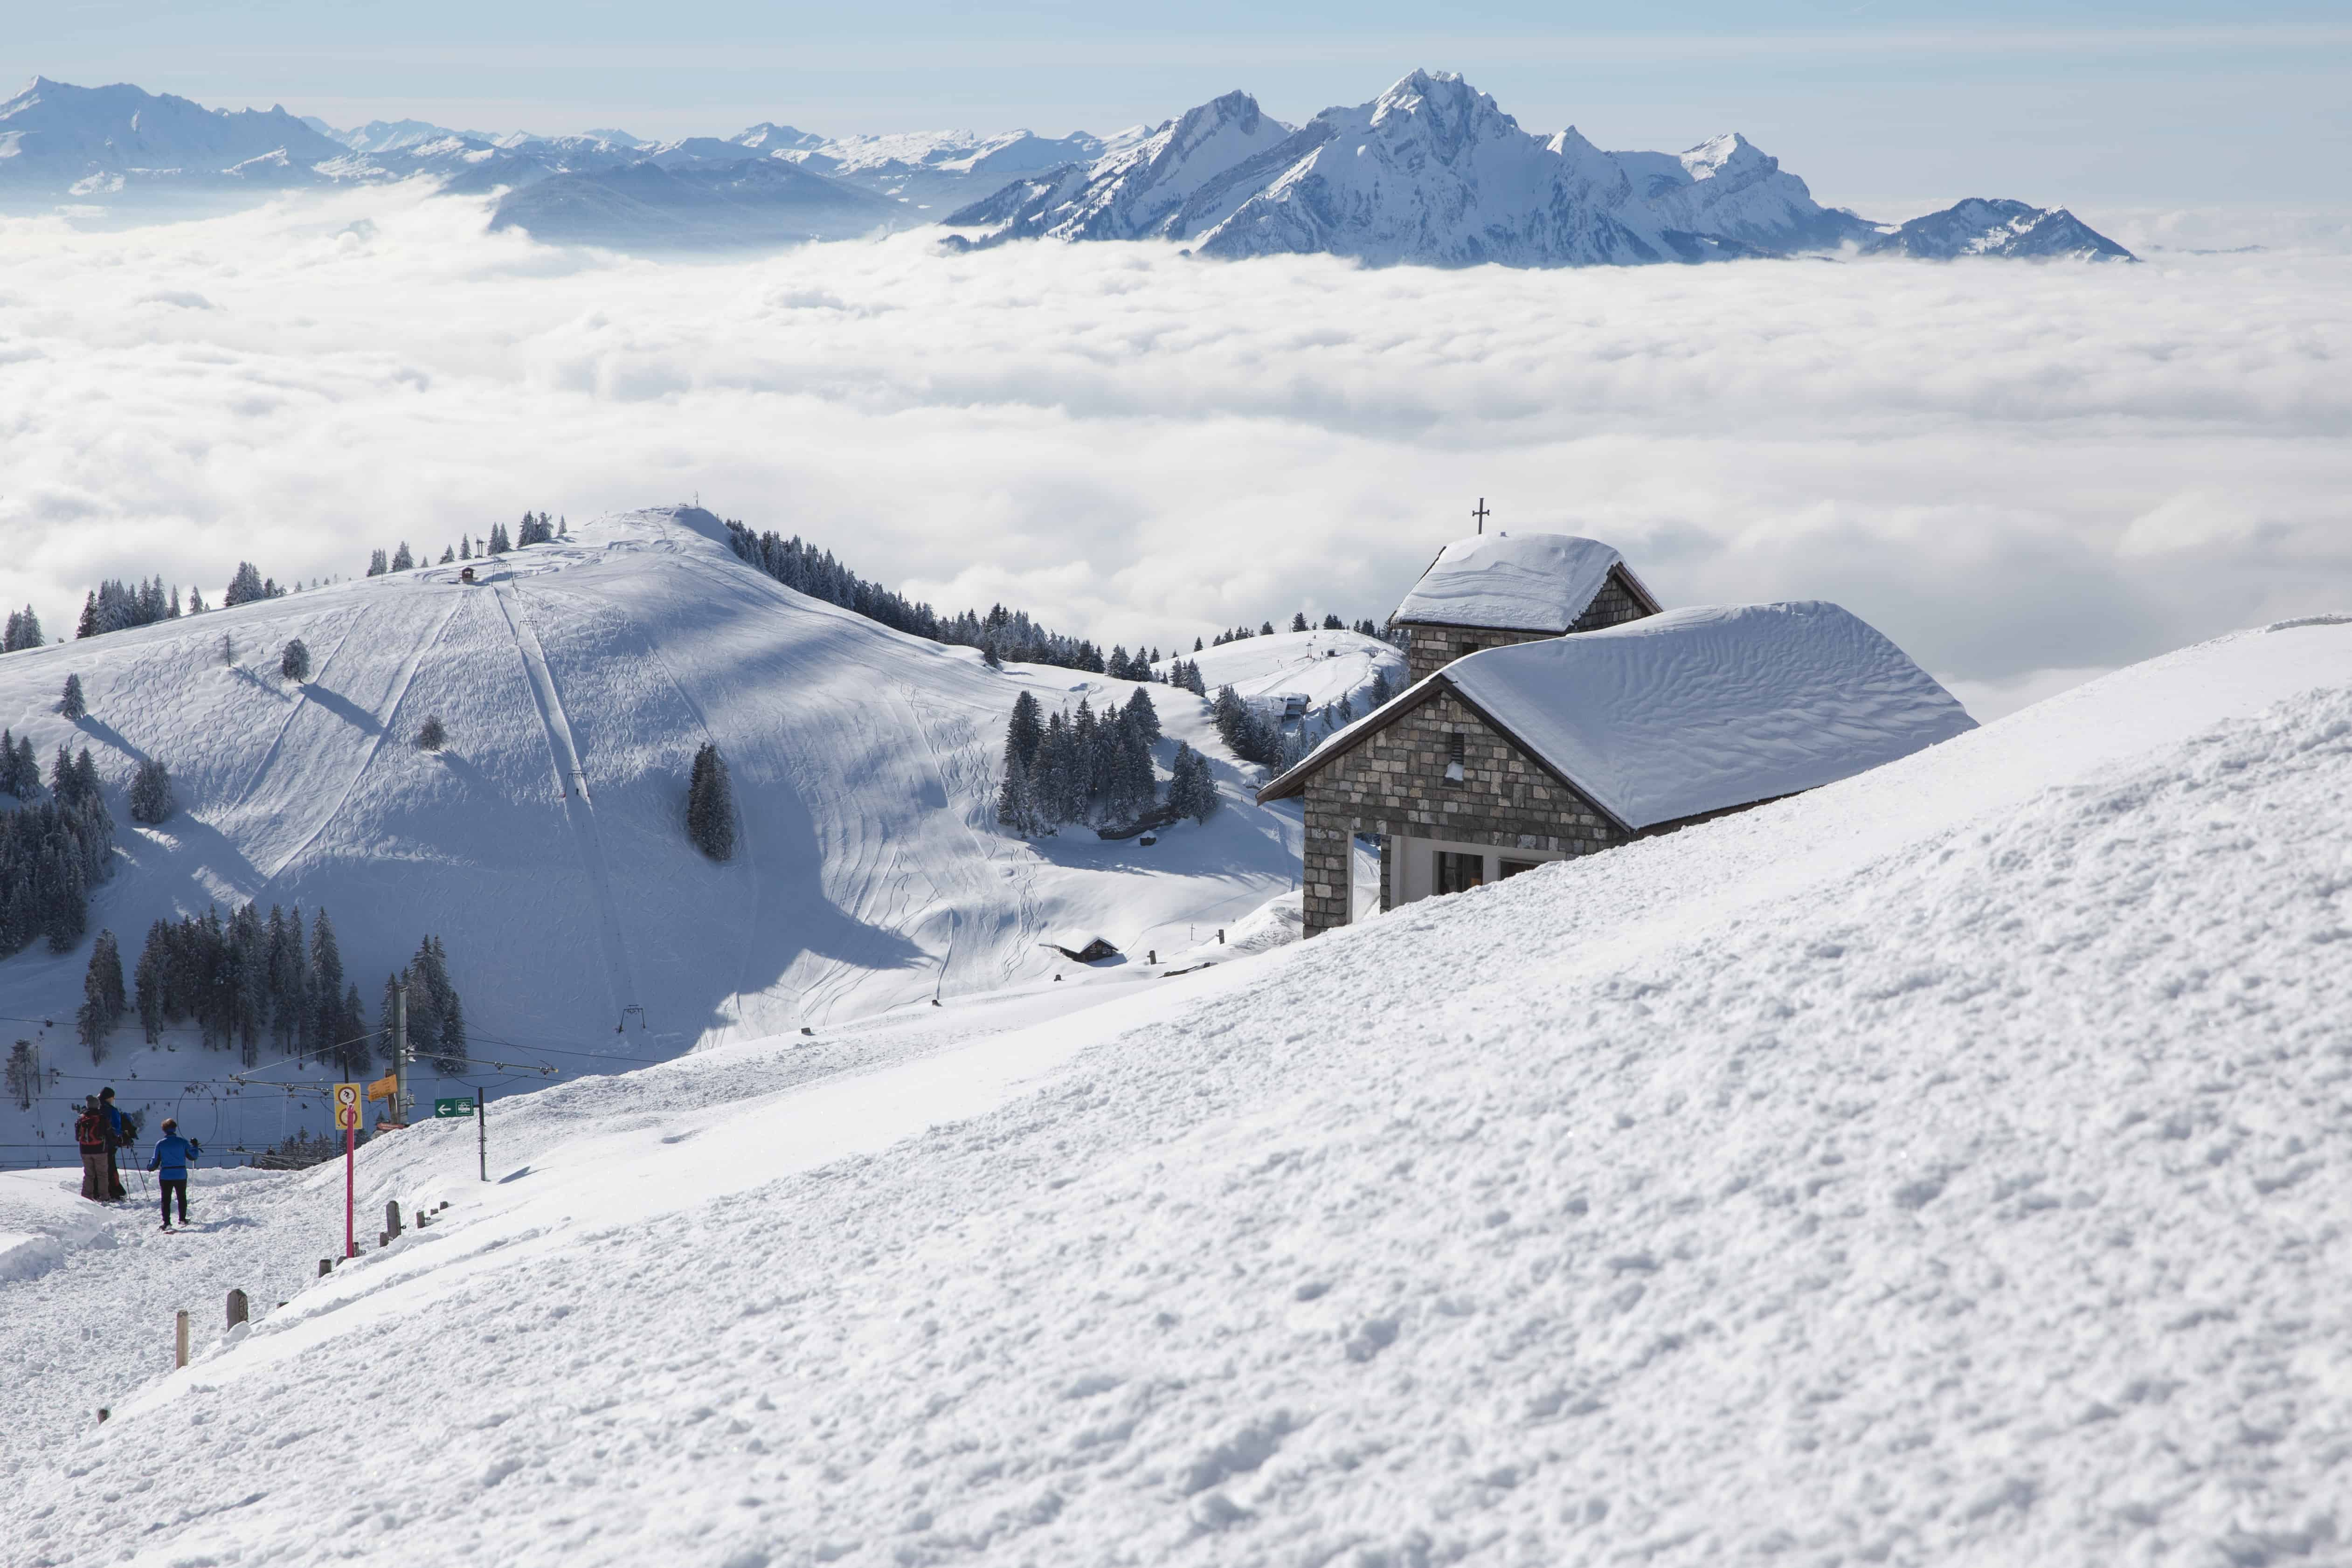 The view from the top of Rigi in Switzerland is full of clouds and mountain peaks